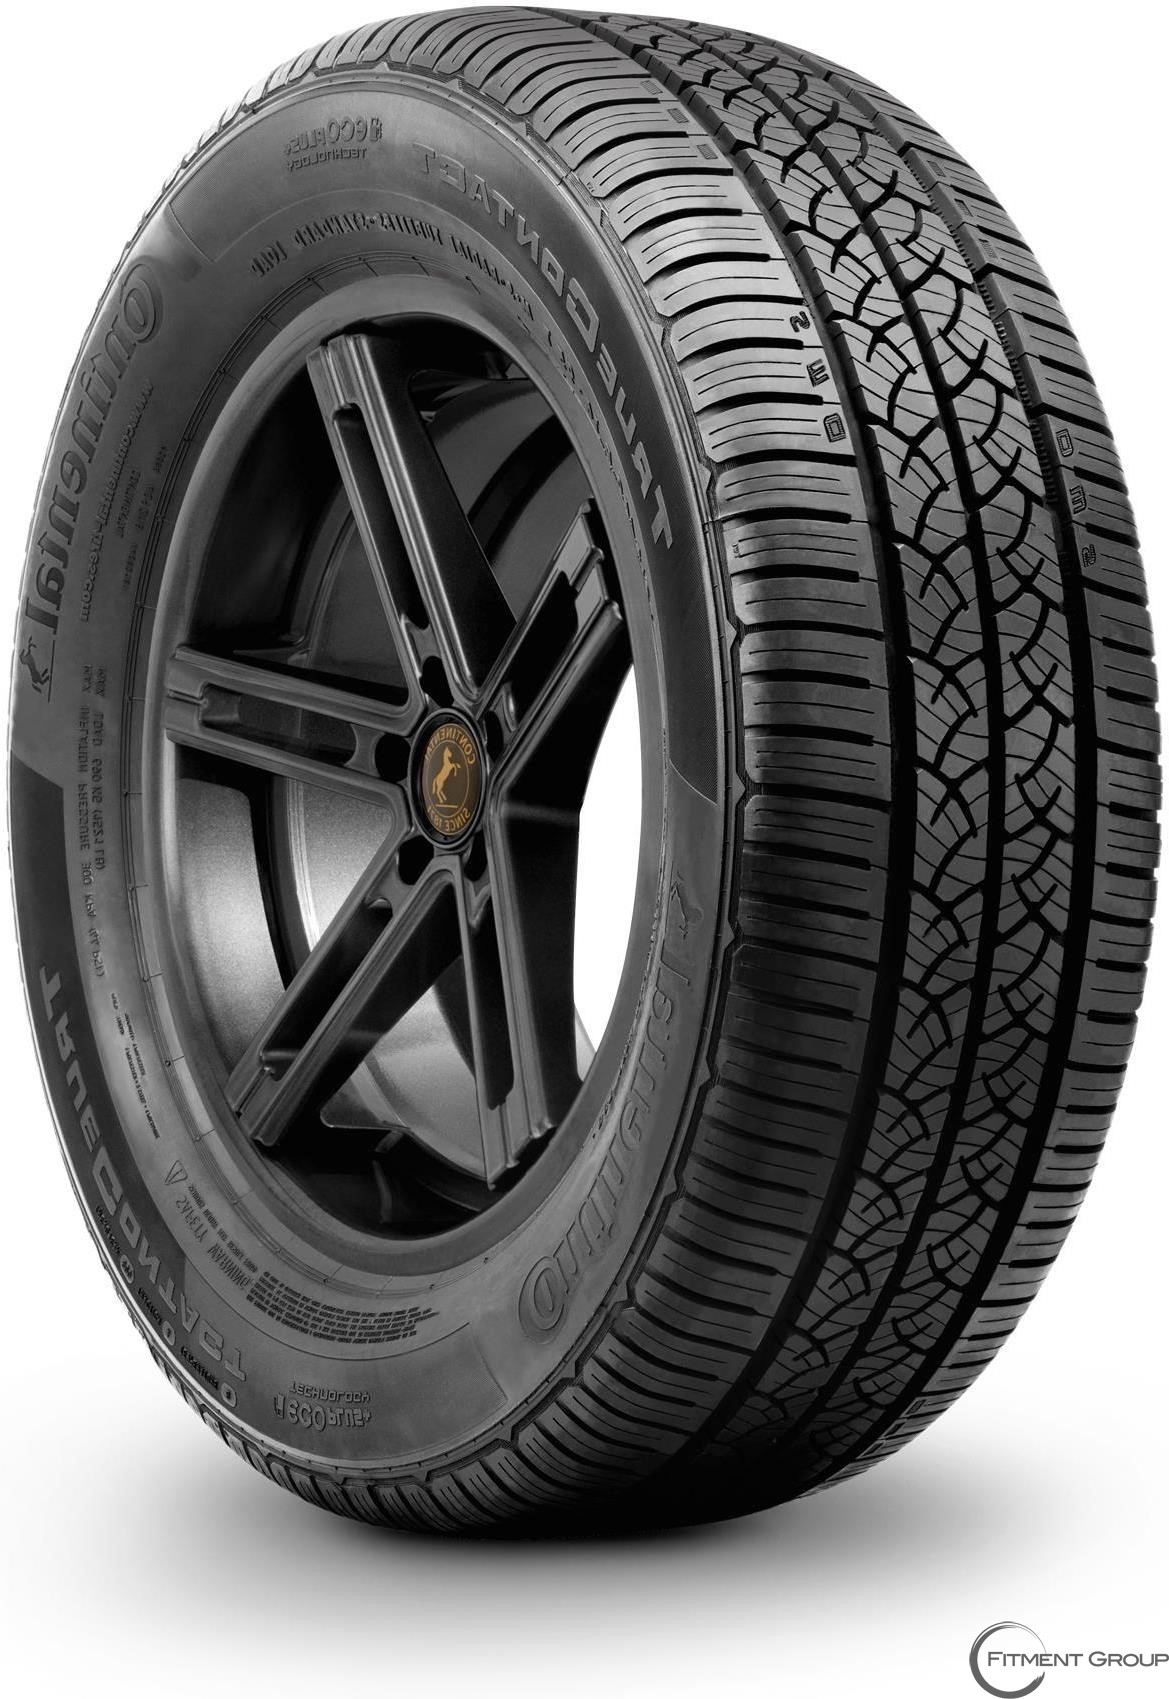 185/65R15 TRUE CONTACT 88T  BSW CNT